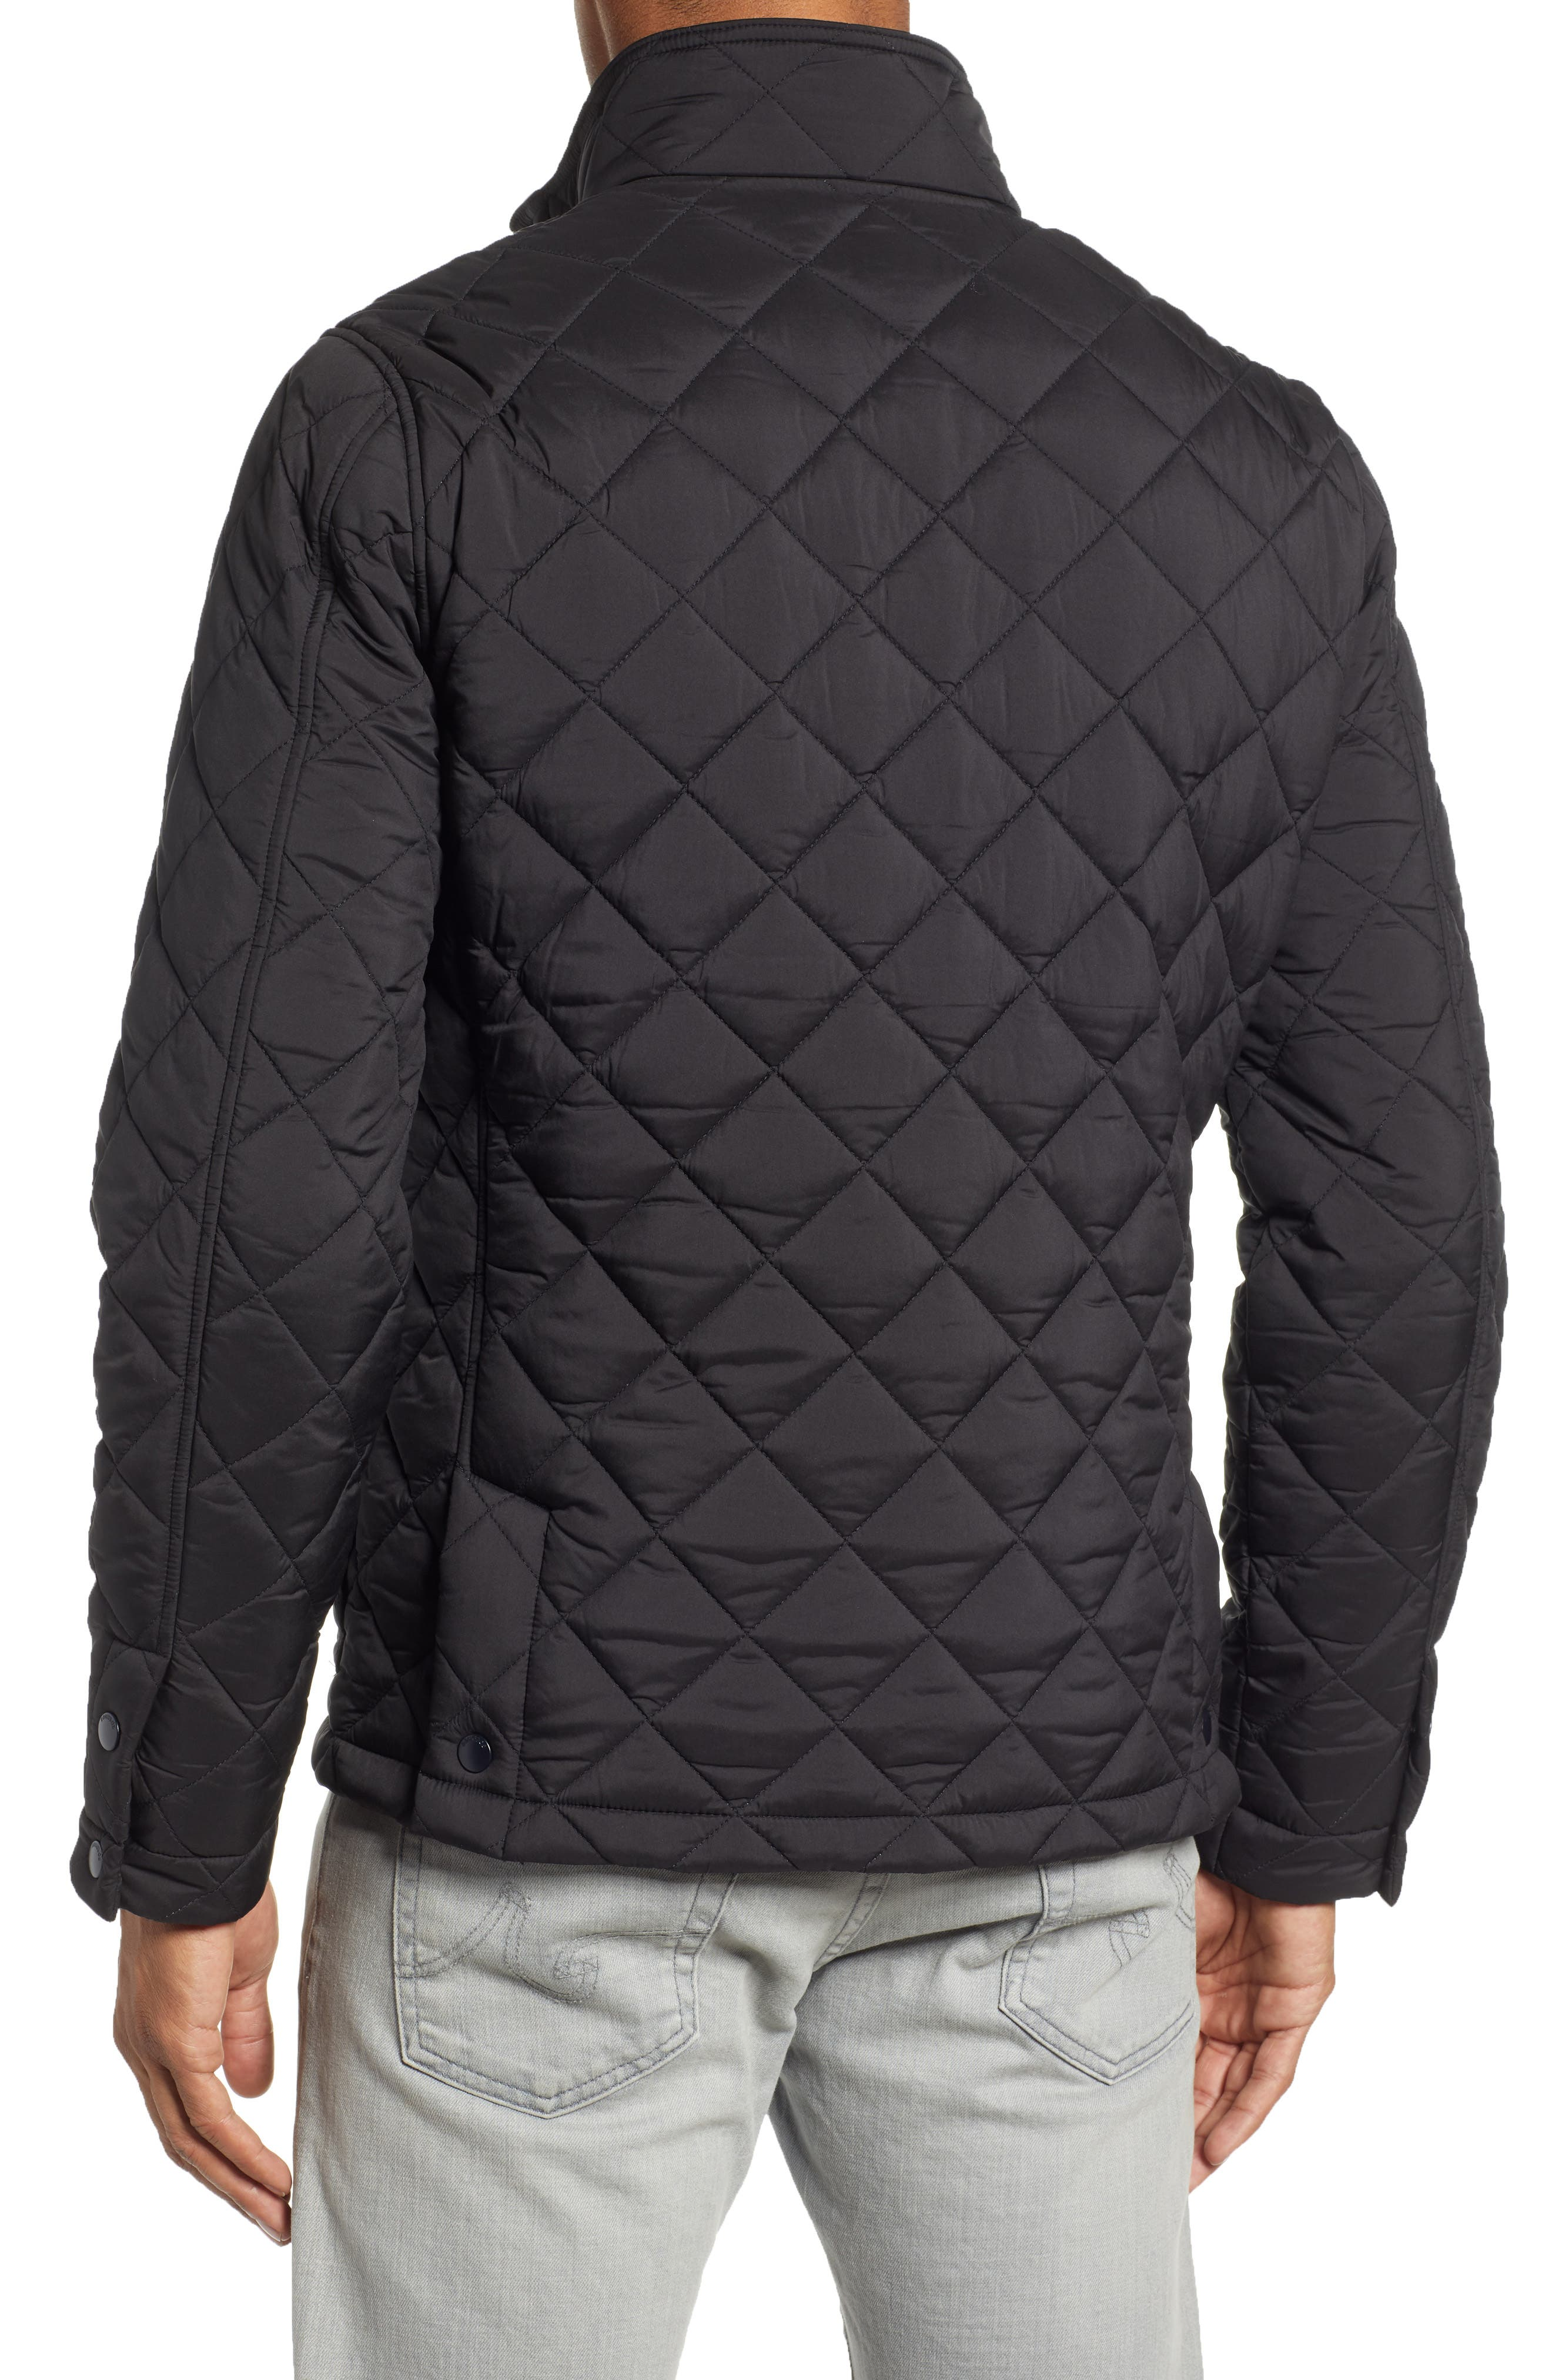 Banff Quilted Jacket,                             Alternate thumbnail 2, color,                             BLACK